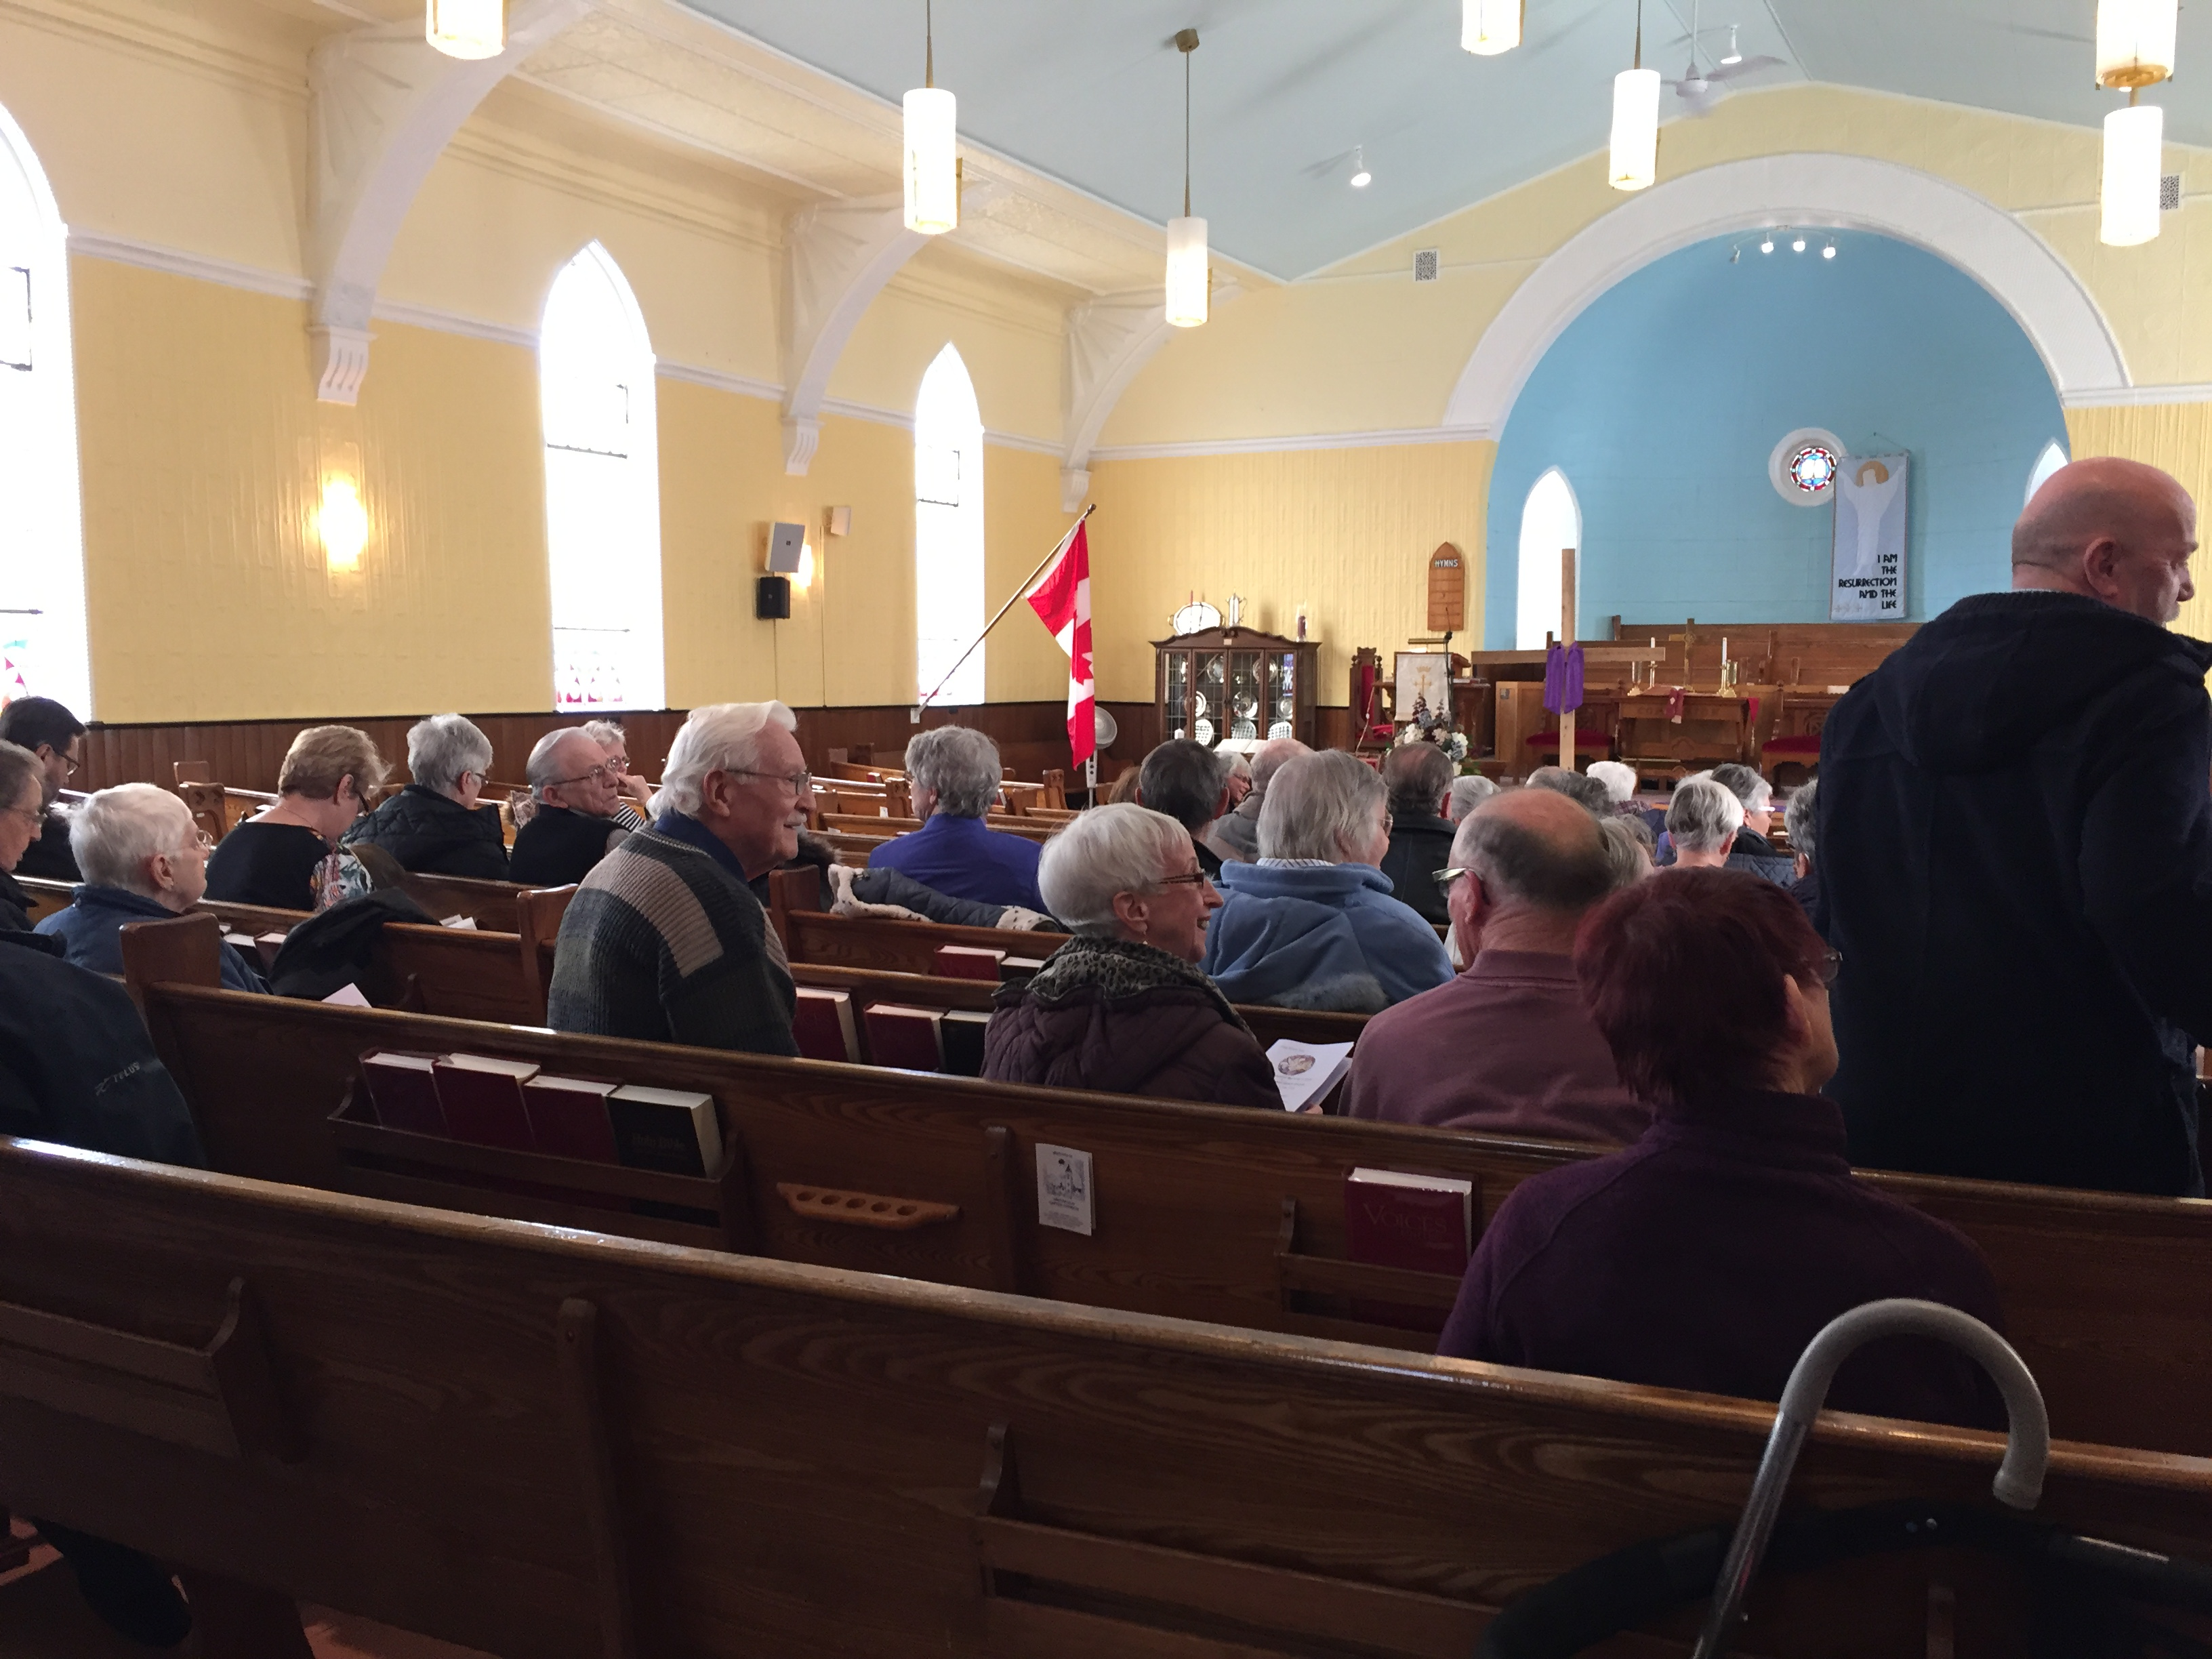 February Sunday services are at 10 a.m. in Smithfield